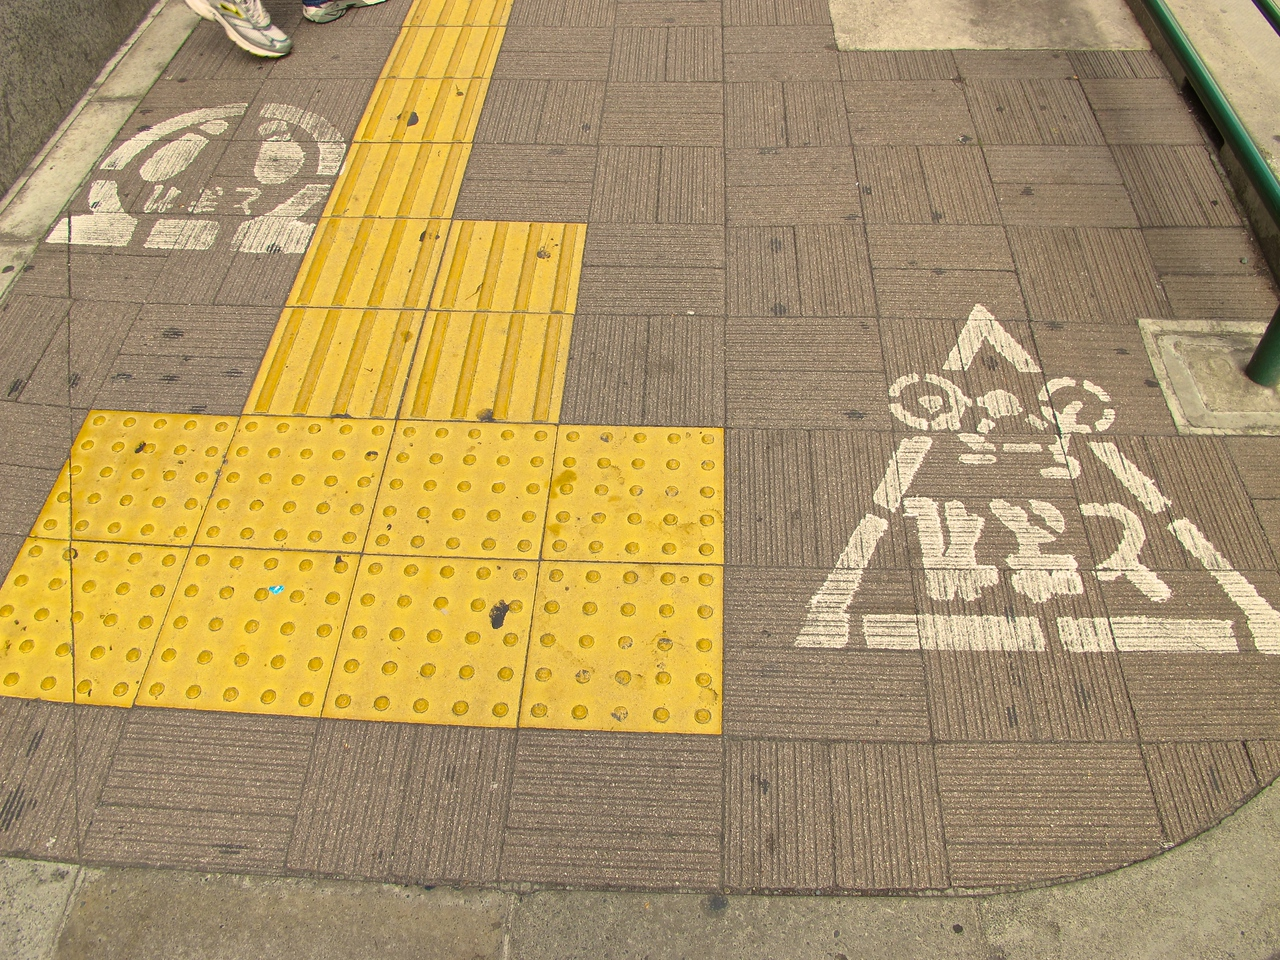 Bicyclists in Tokyo can ride on the sidewalk.  While it looks by the markings that it's clear where they should be and where pedestrians should be, it's not done that way.